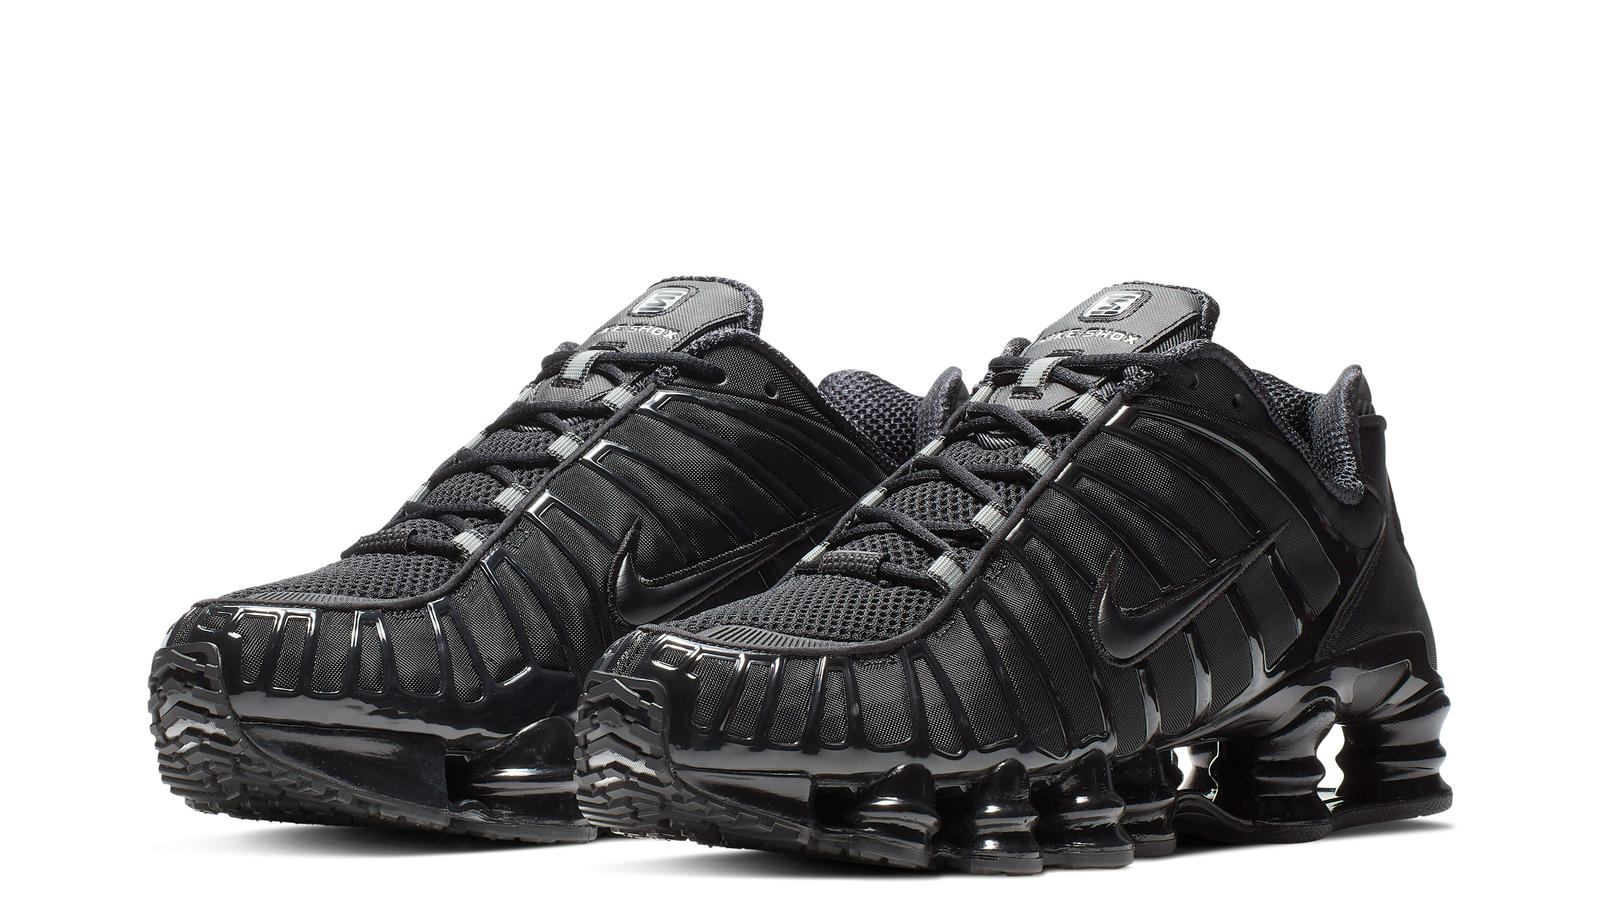 4e4f0d3b43c1 How to Get the Nike Shox R4 - Nike News